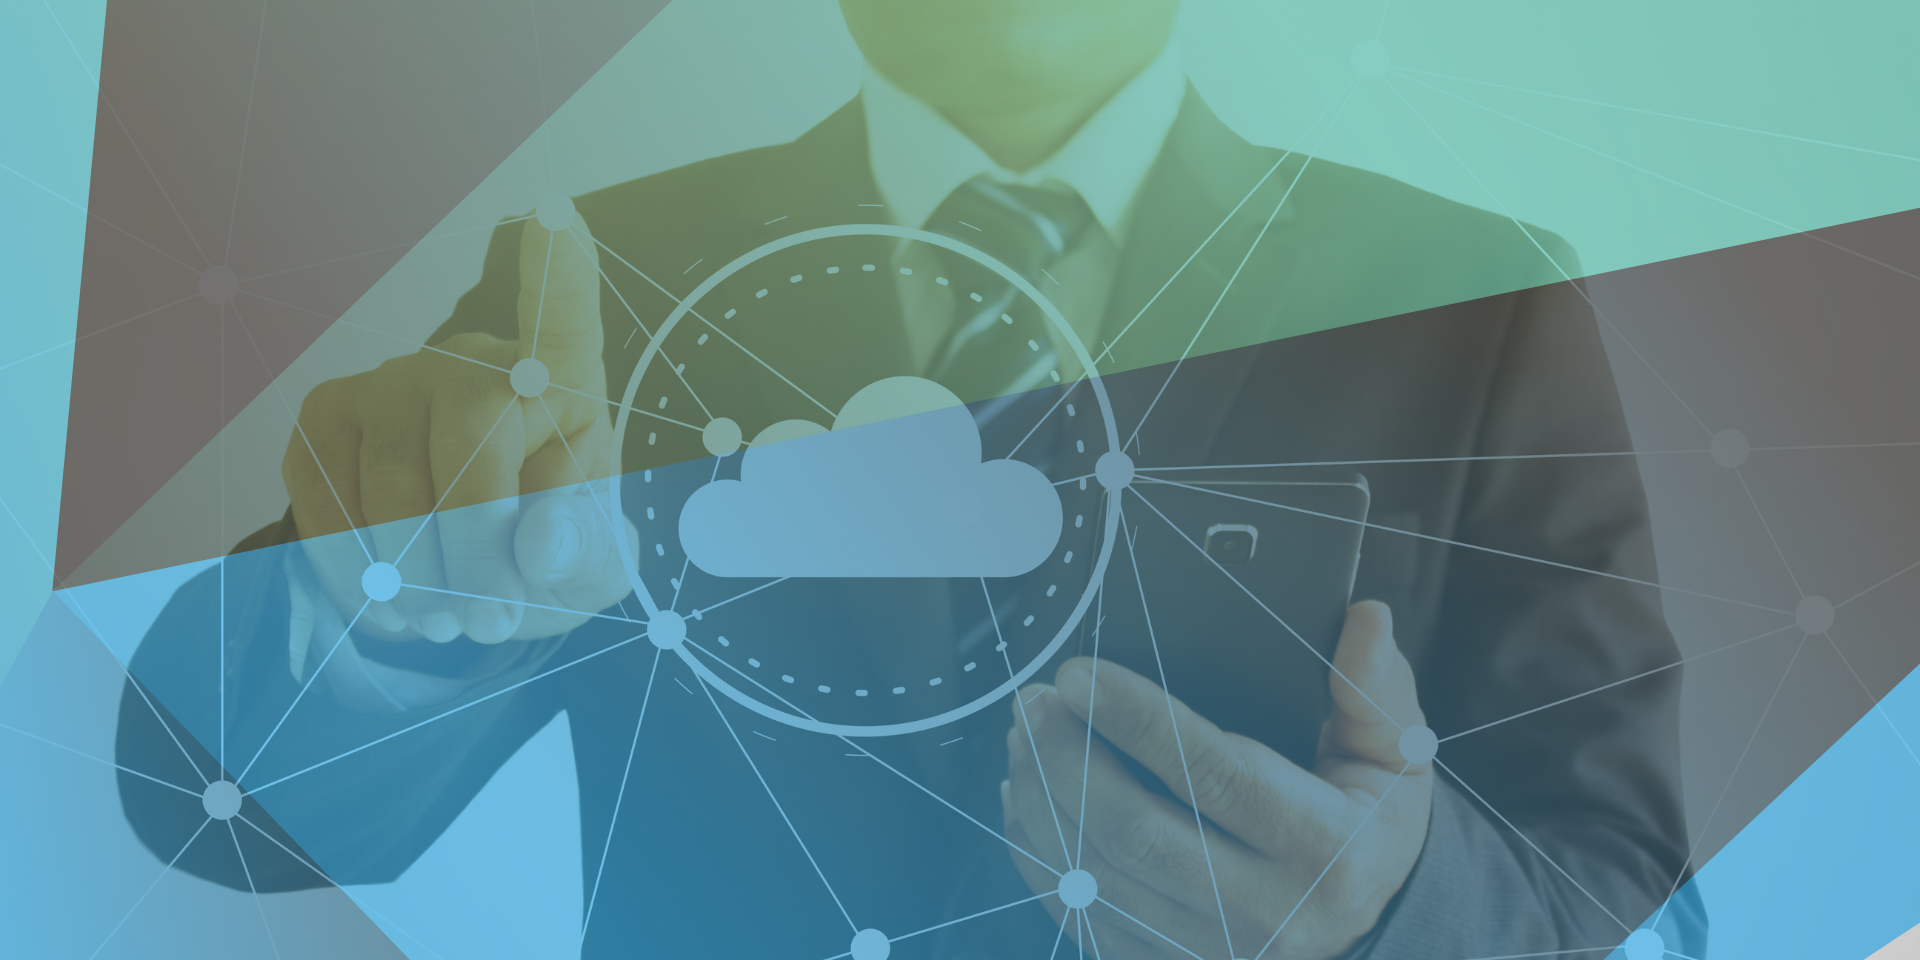 A network manager with the Cloud at their fingertips by utilsiing SD-WAN